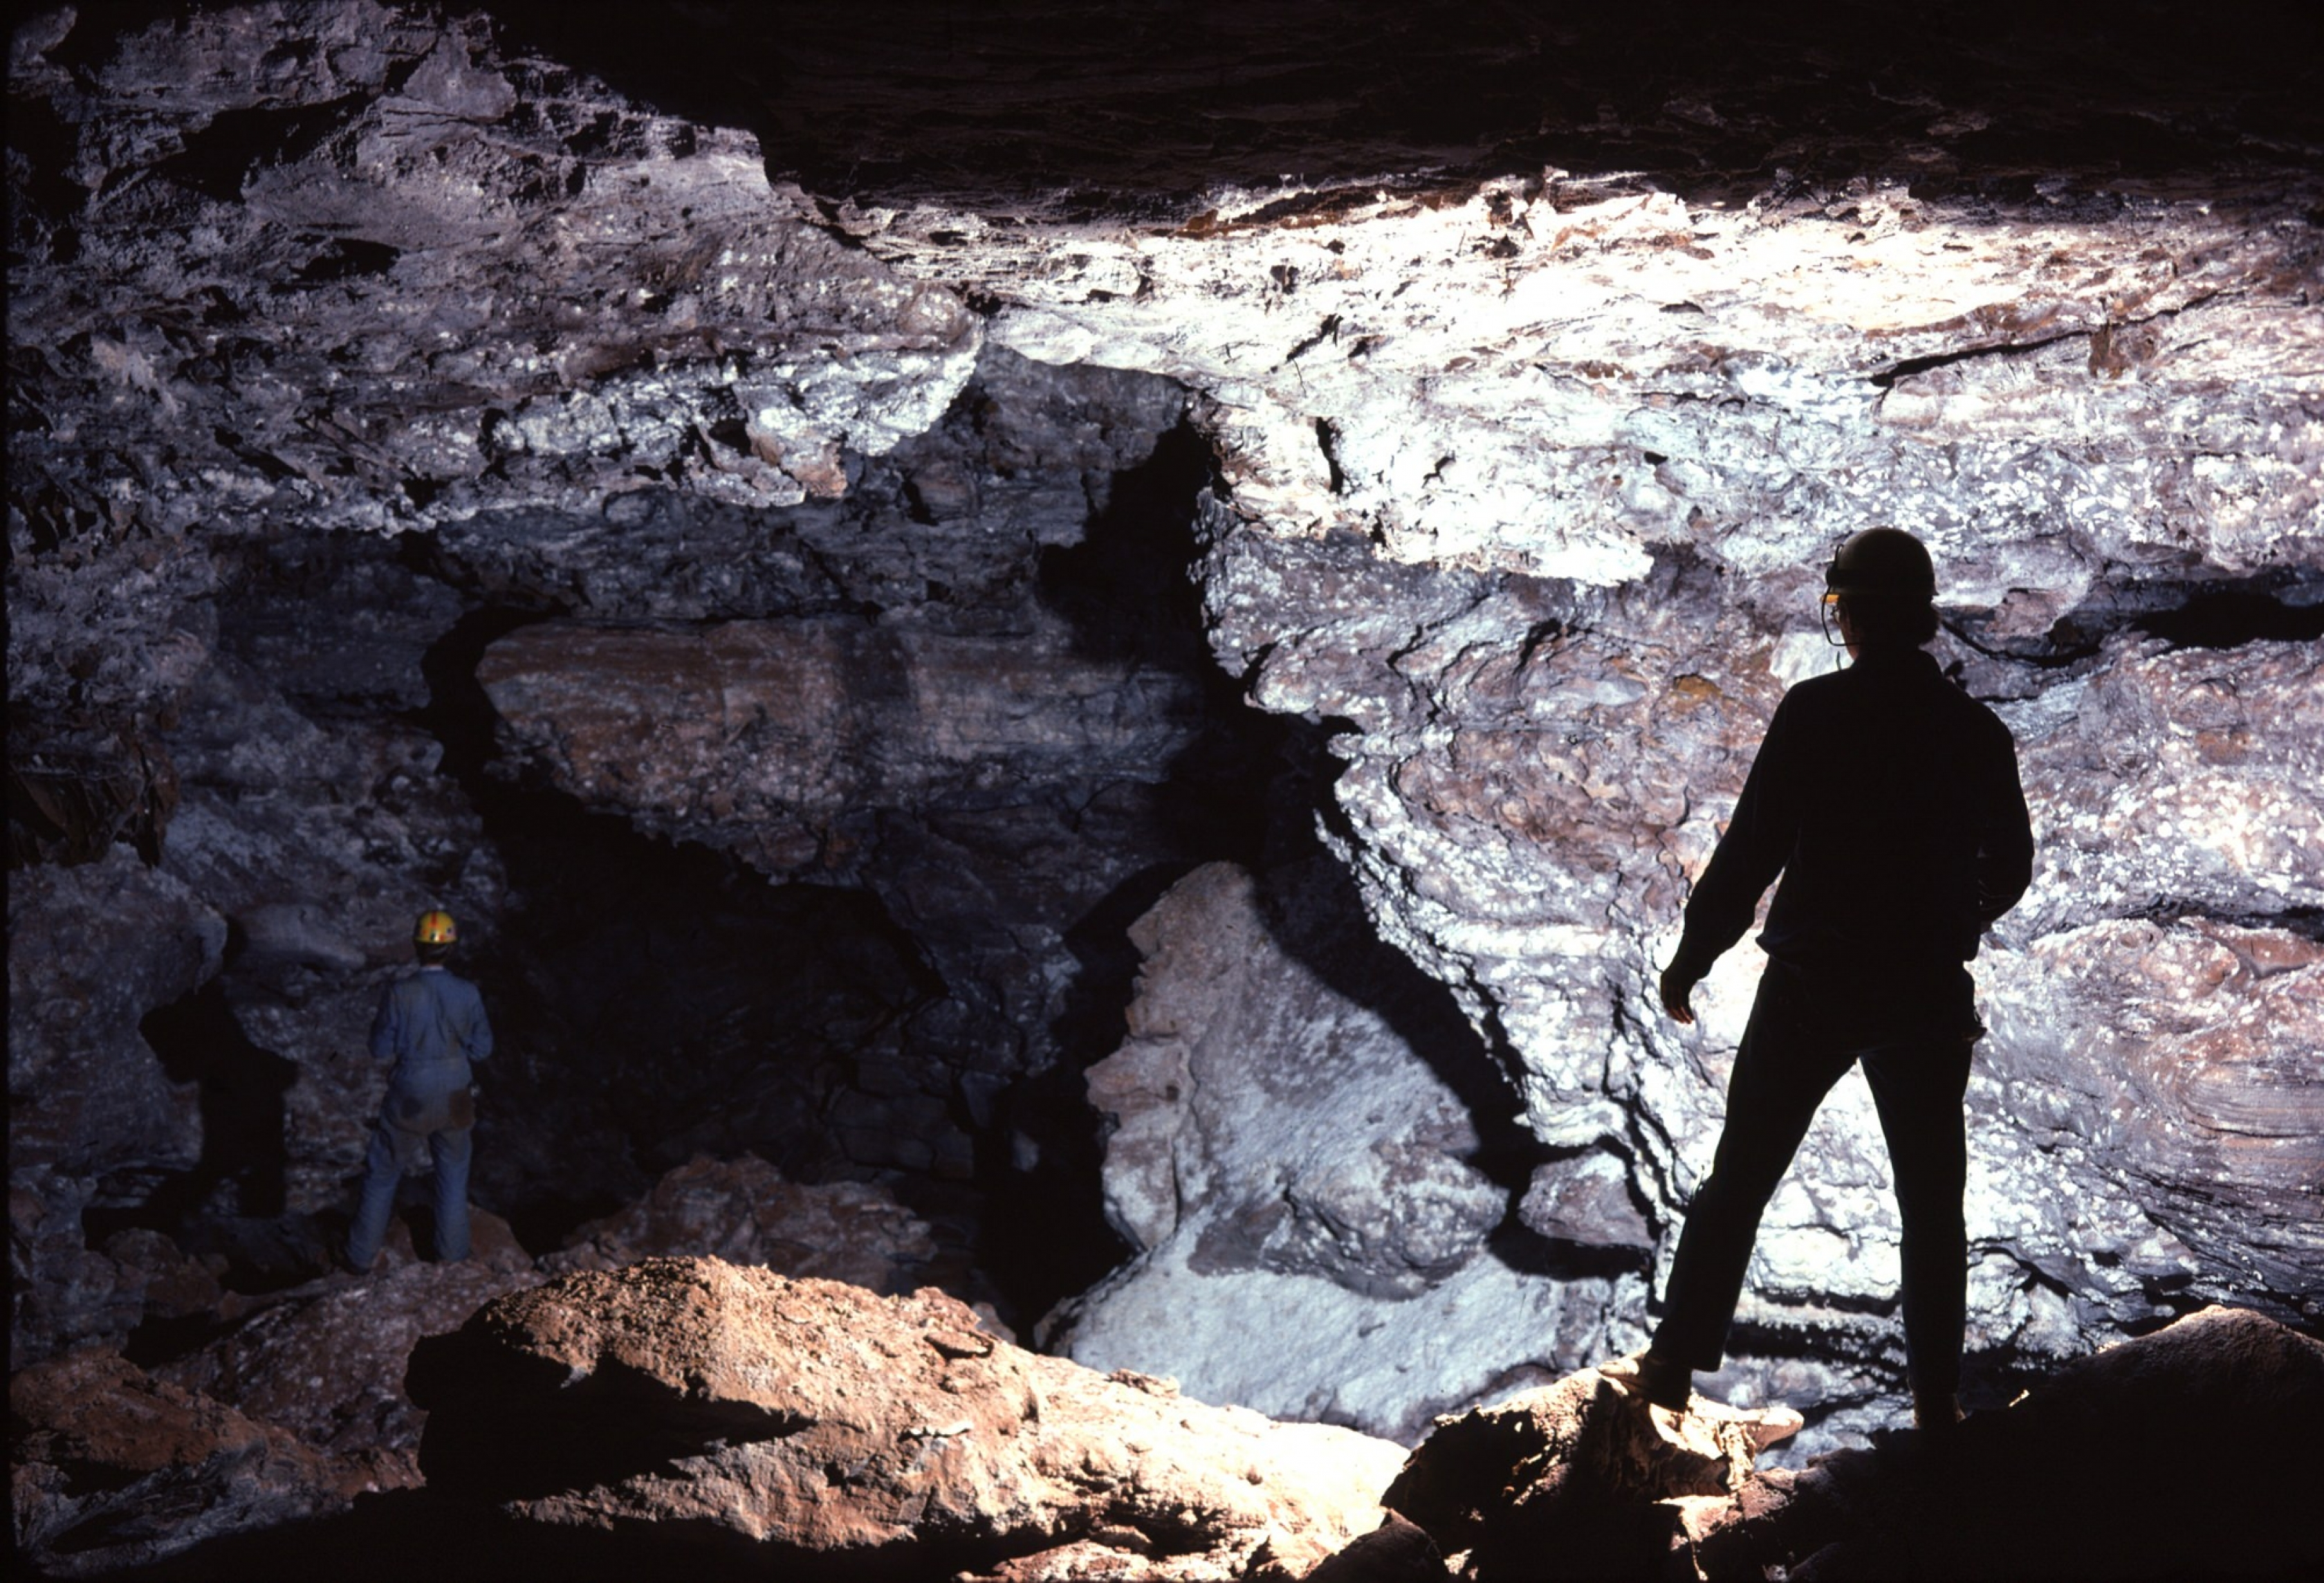 A caver explores Wind Cave National Park.